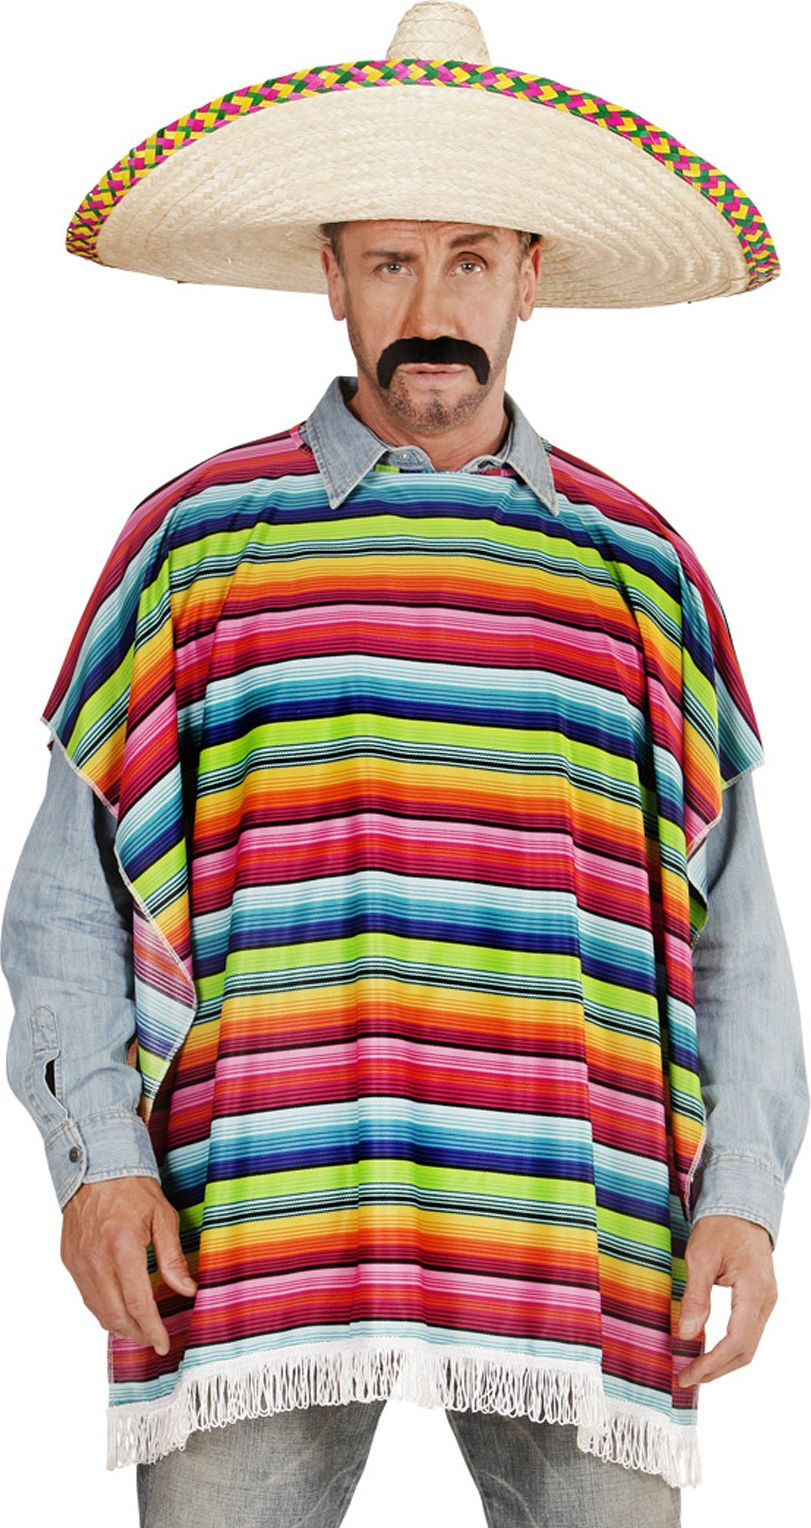 Multikleurige mexicaanse poncho